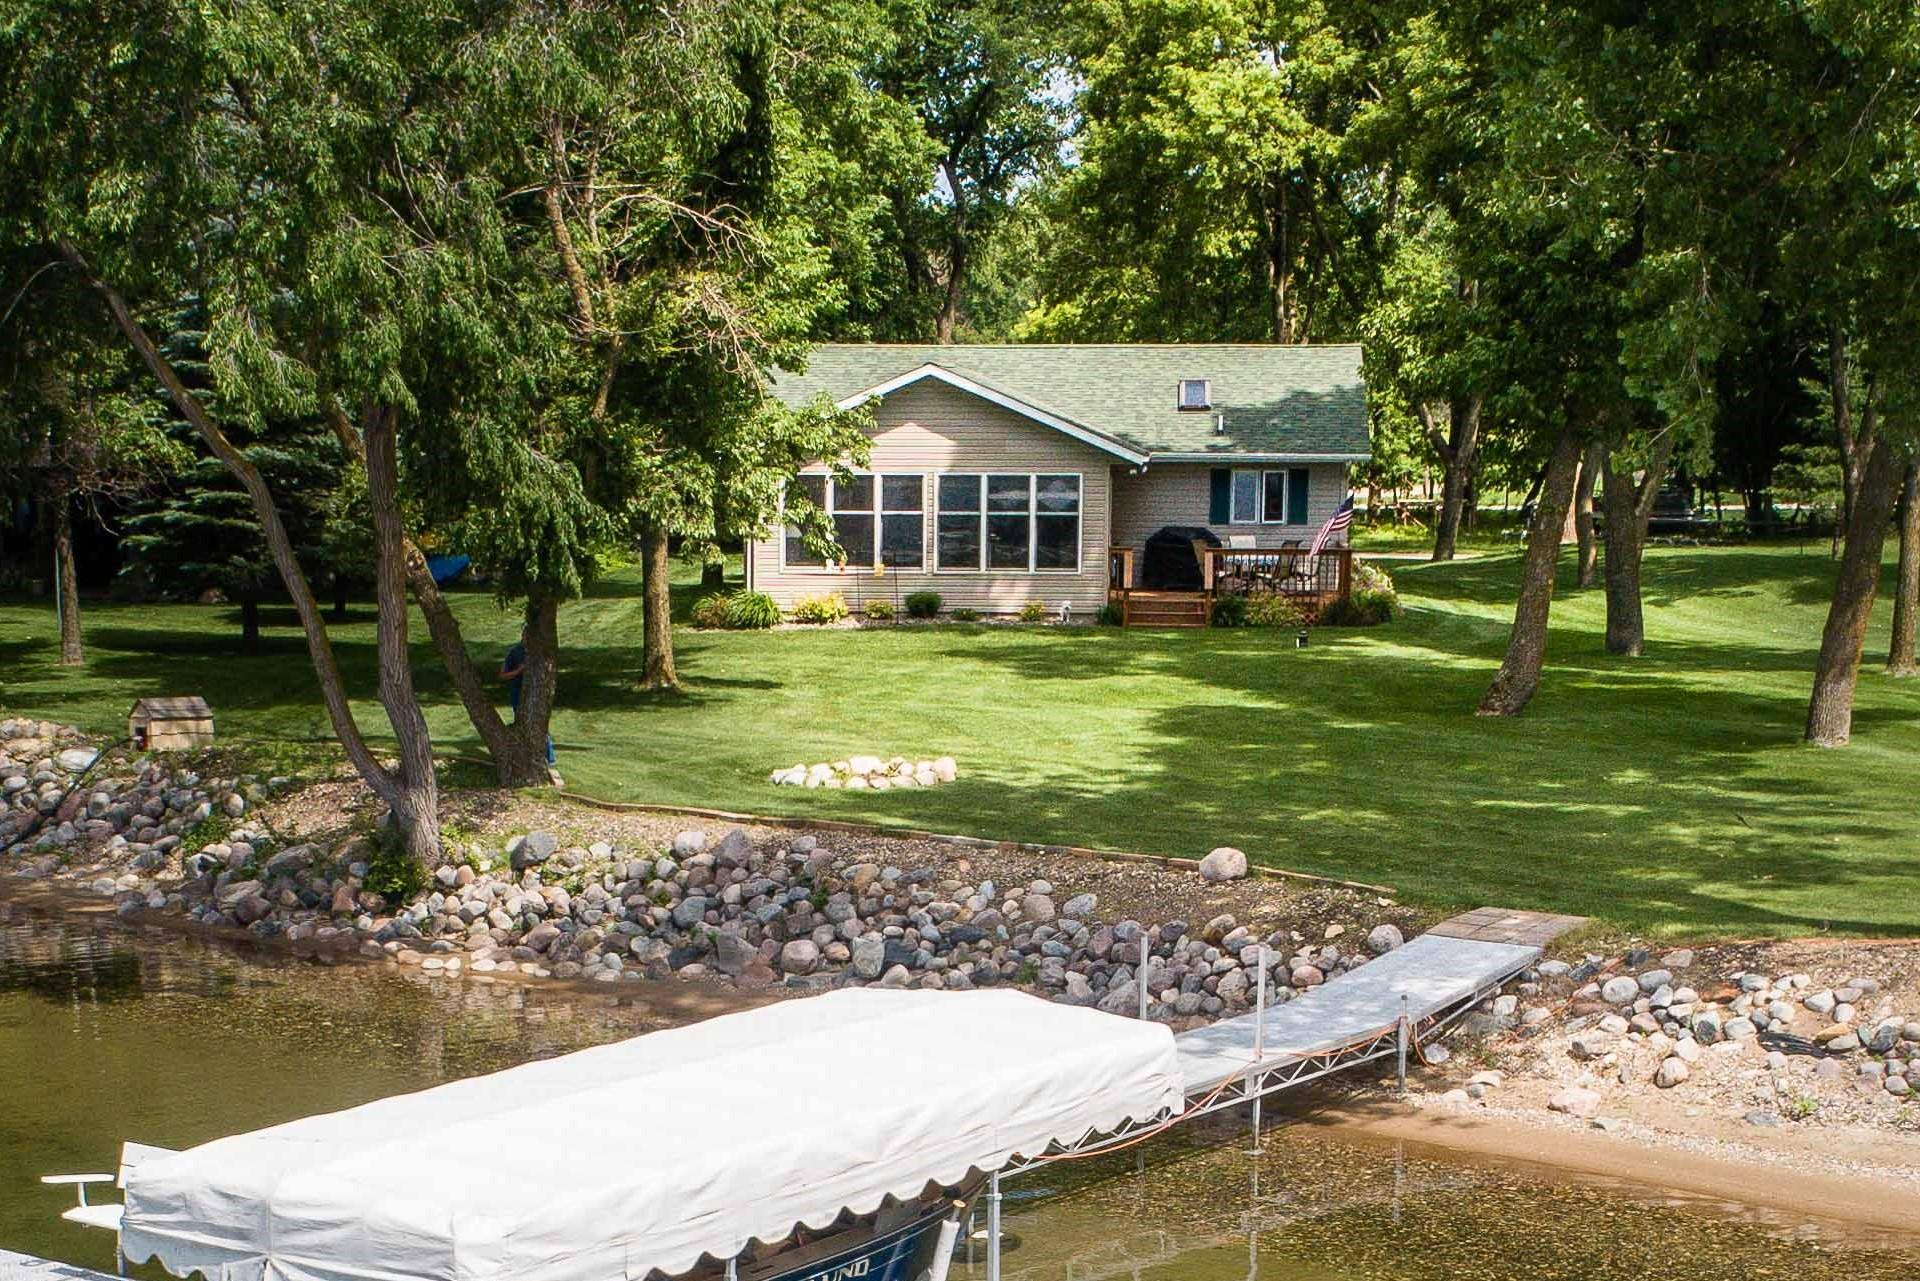 23106 Garland Property Photo - Battle Lake, MN real estate listing